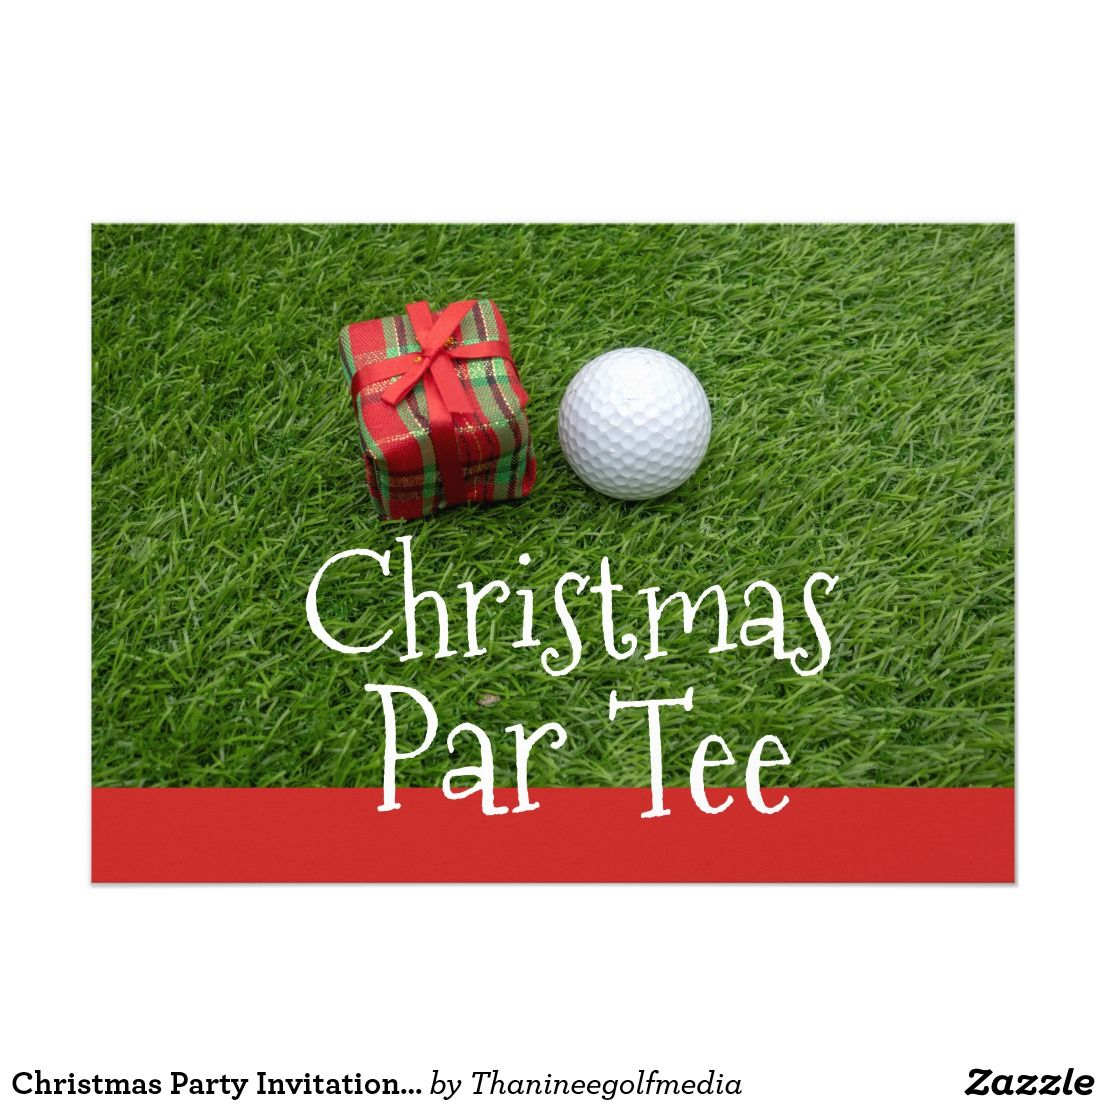 Christmas party invitation for golfer